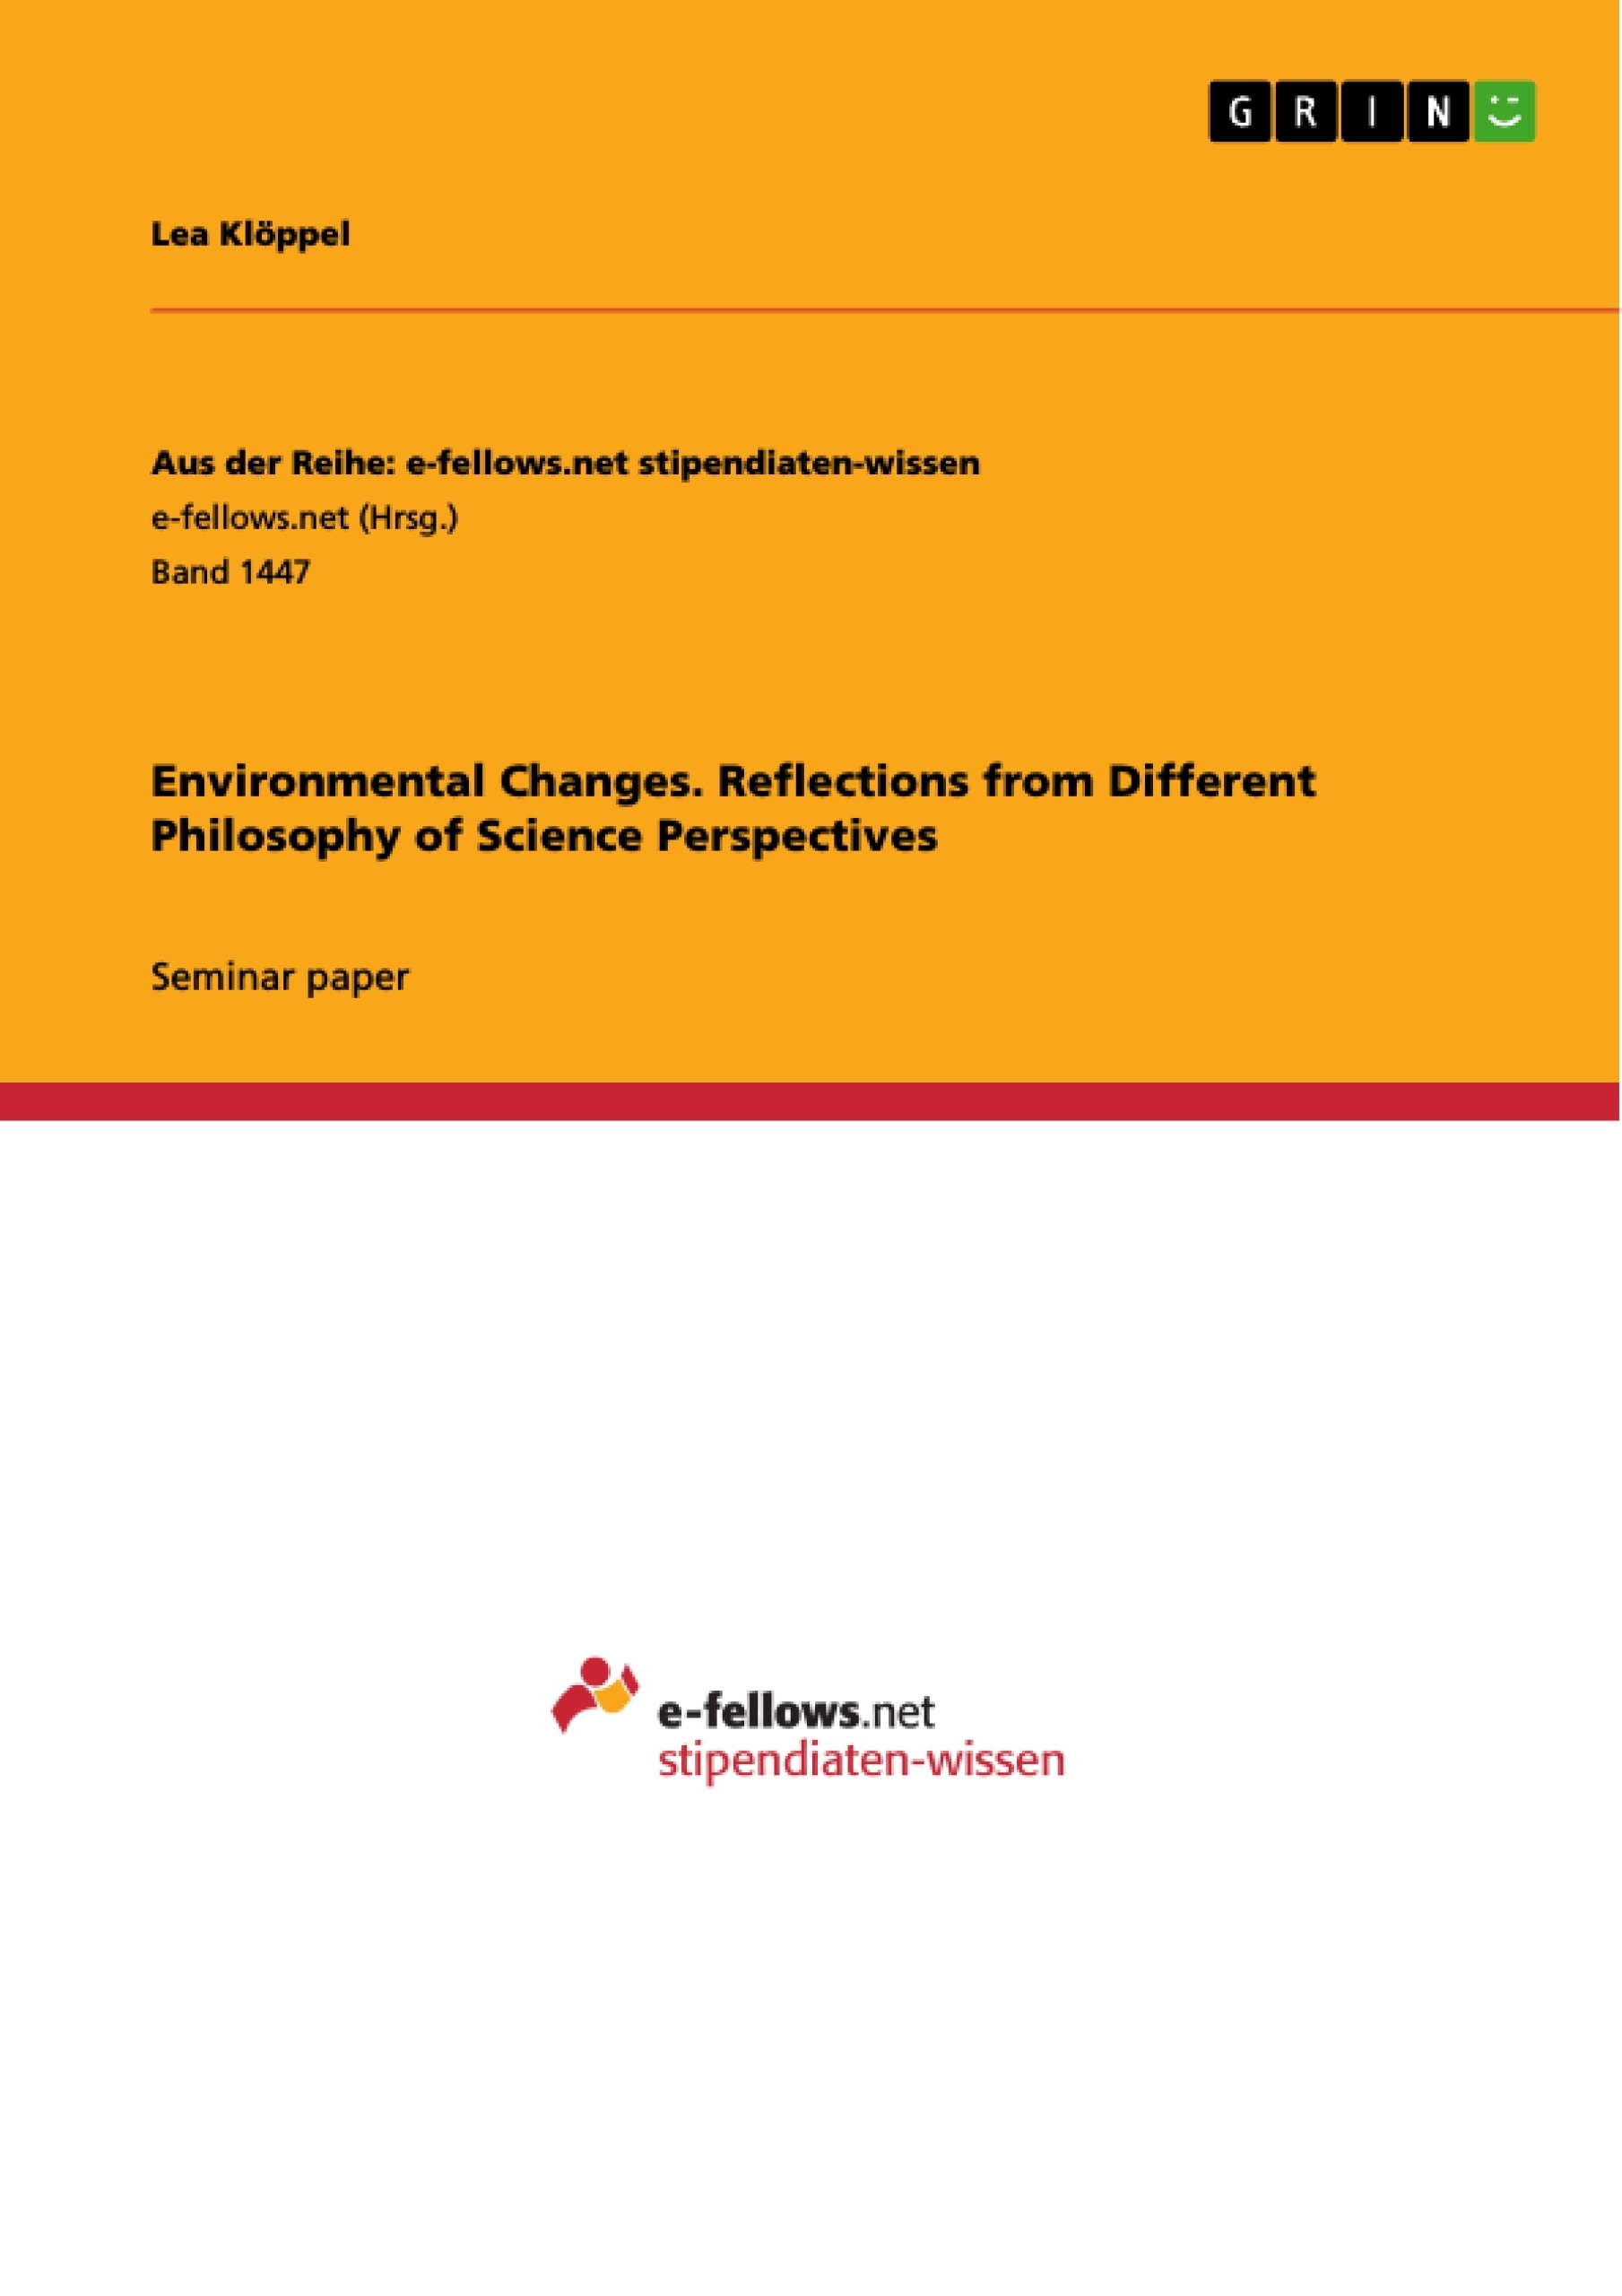 Title: Environmental Changes. Reflections from Different Philosophy of Science Perspectives